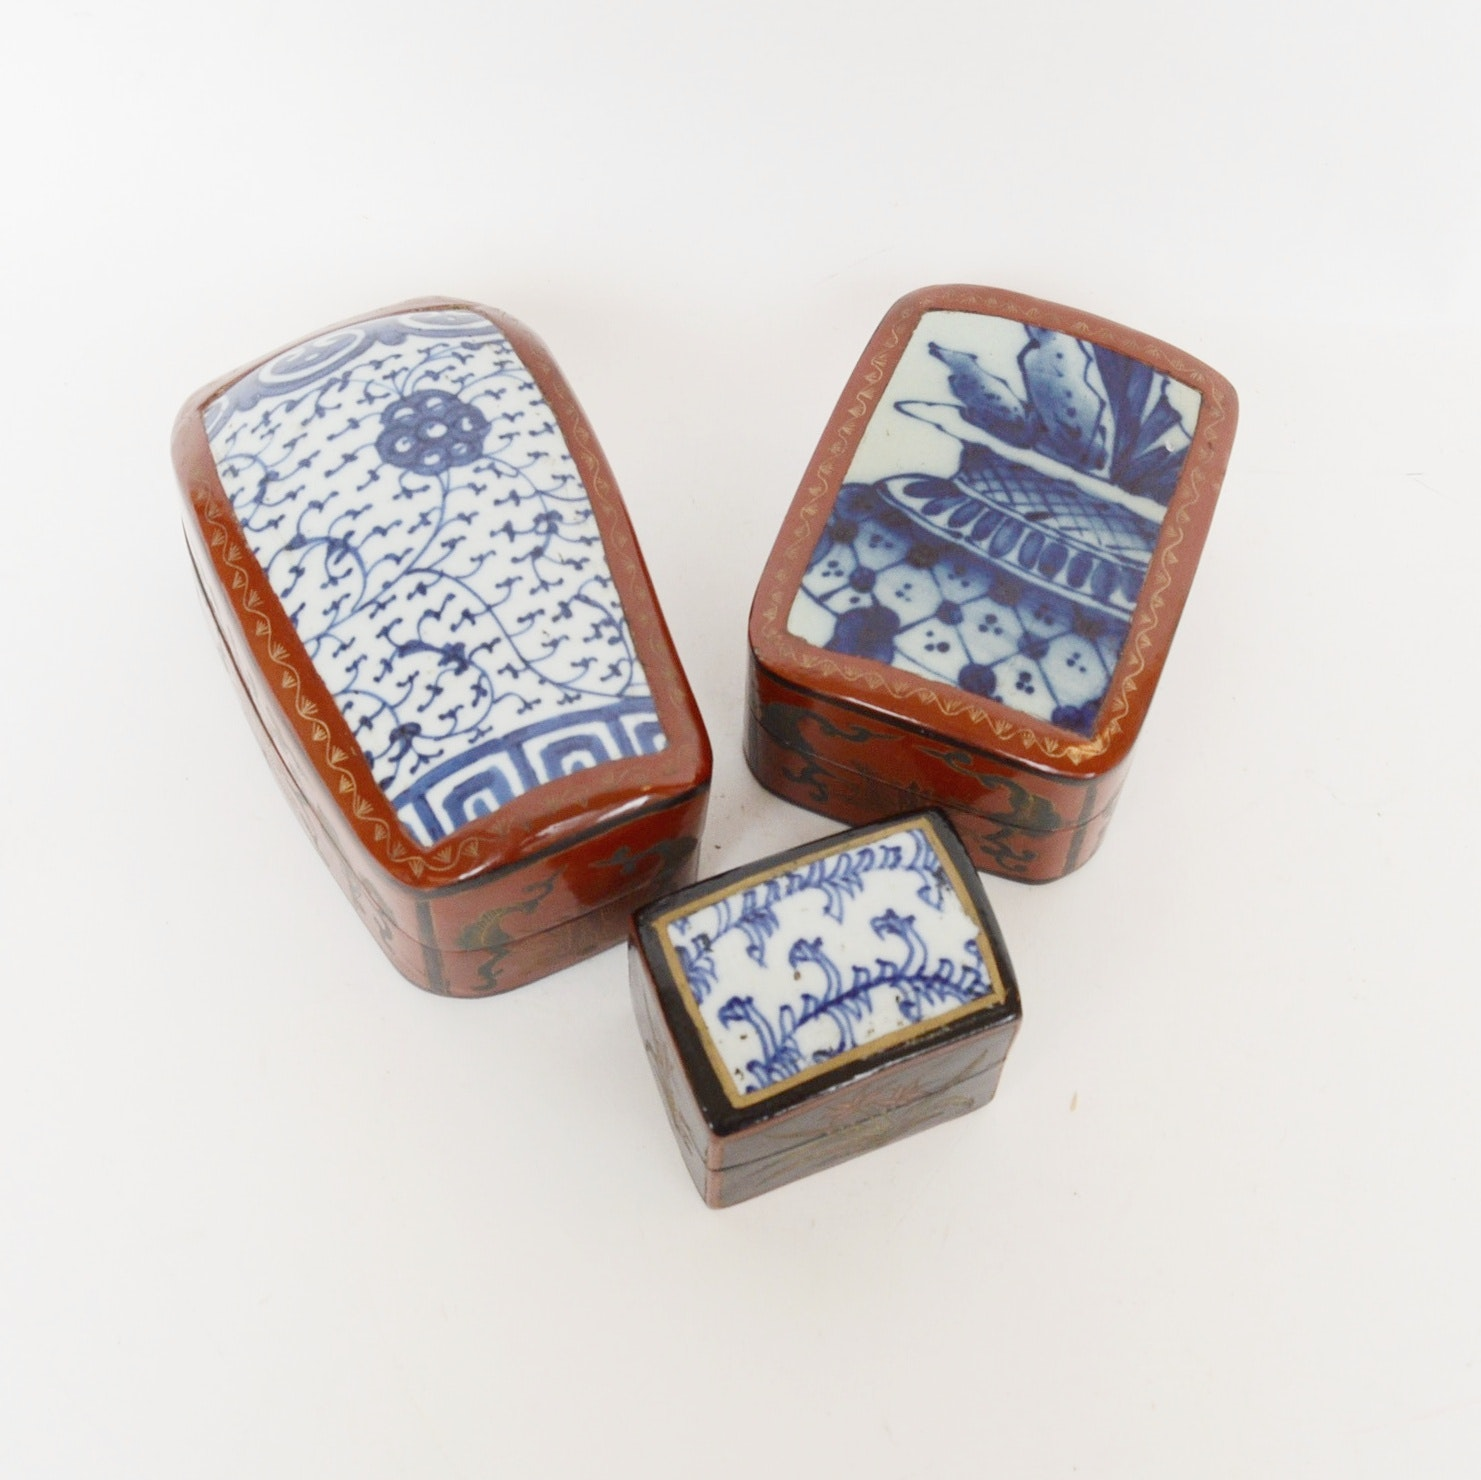 Chinese Hand-Painted and Lacquered Boxes with Porcelain Sherd Lids